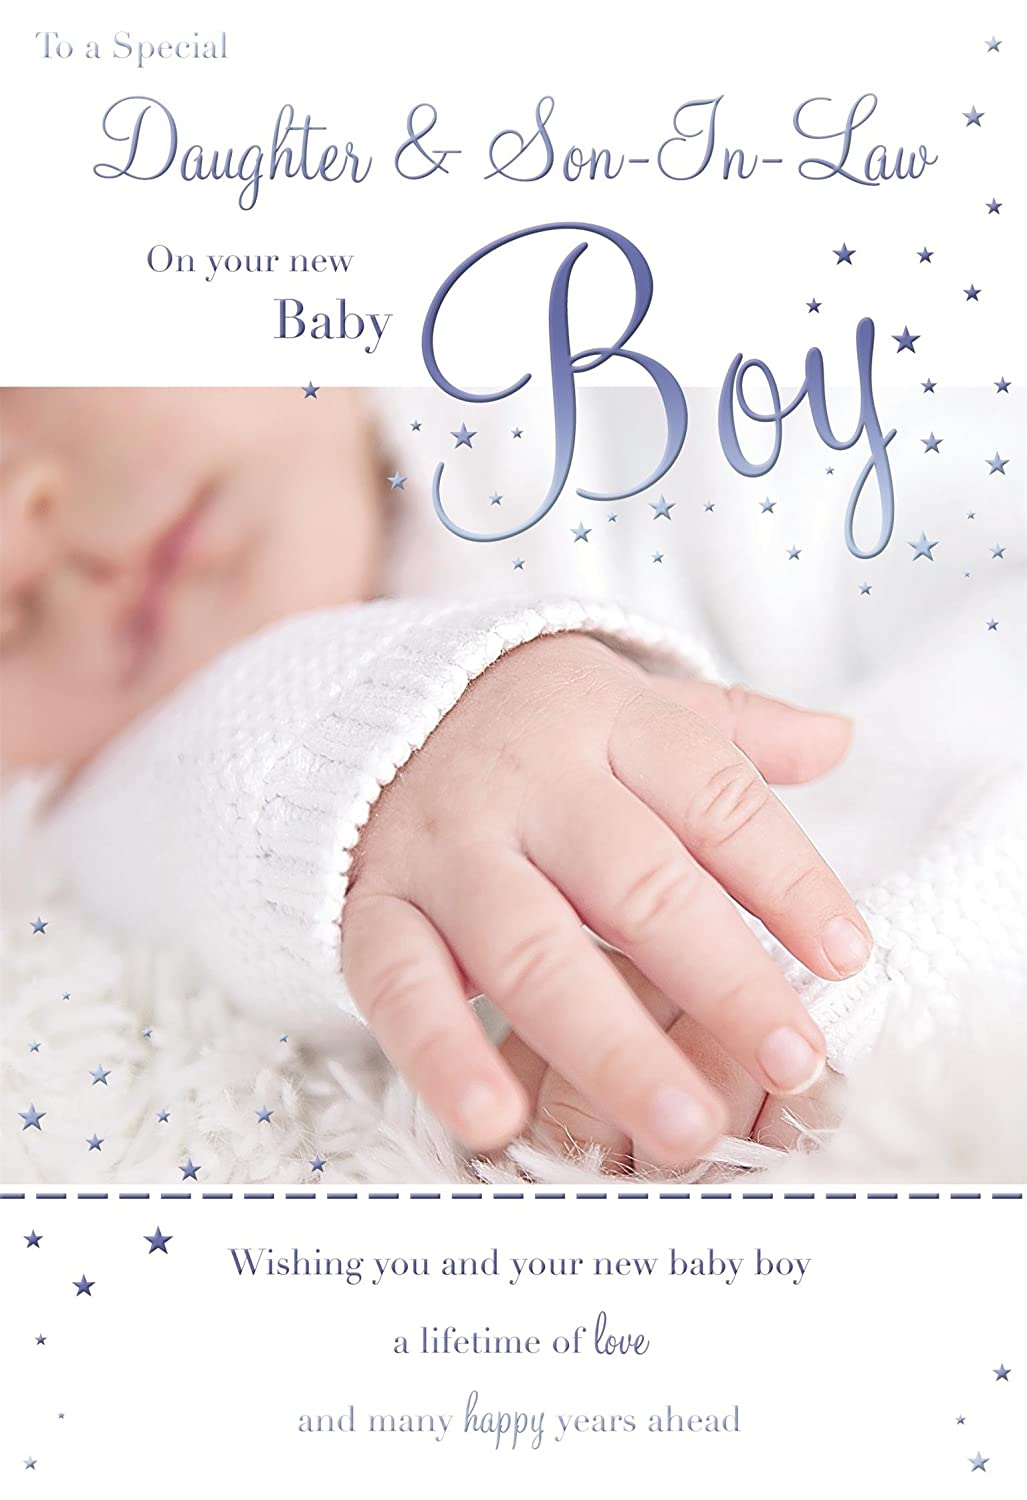 To A Special Daughter & Son-In-Law On The Birth Of Your Baby Boy Feet Design Male Boy Birth New Baby Greeting Card